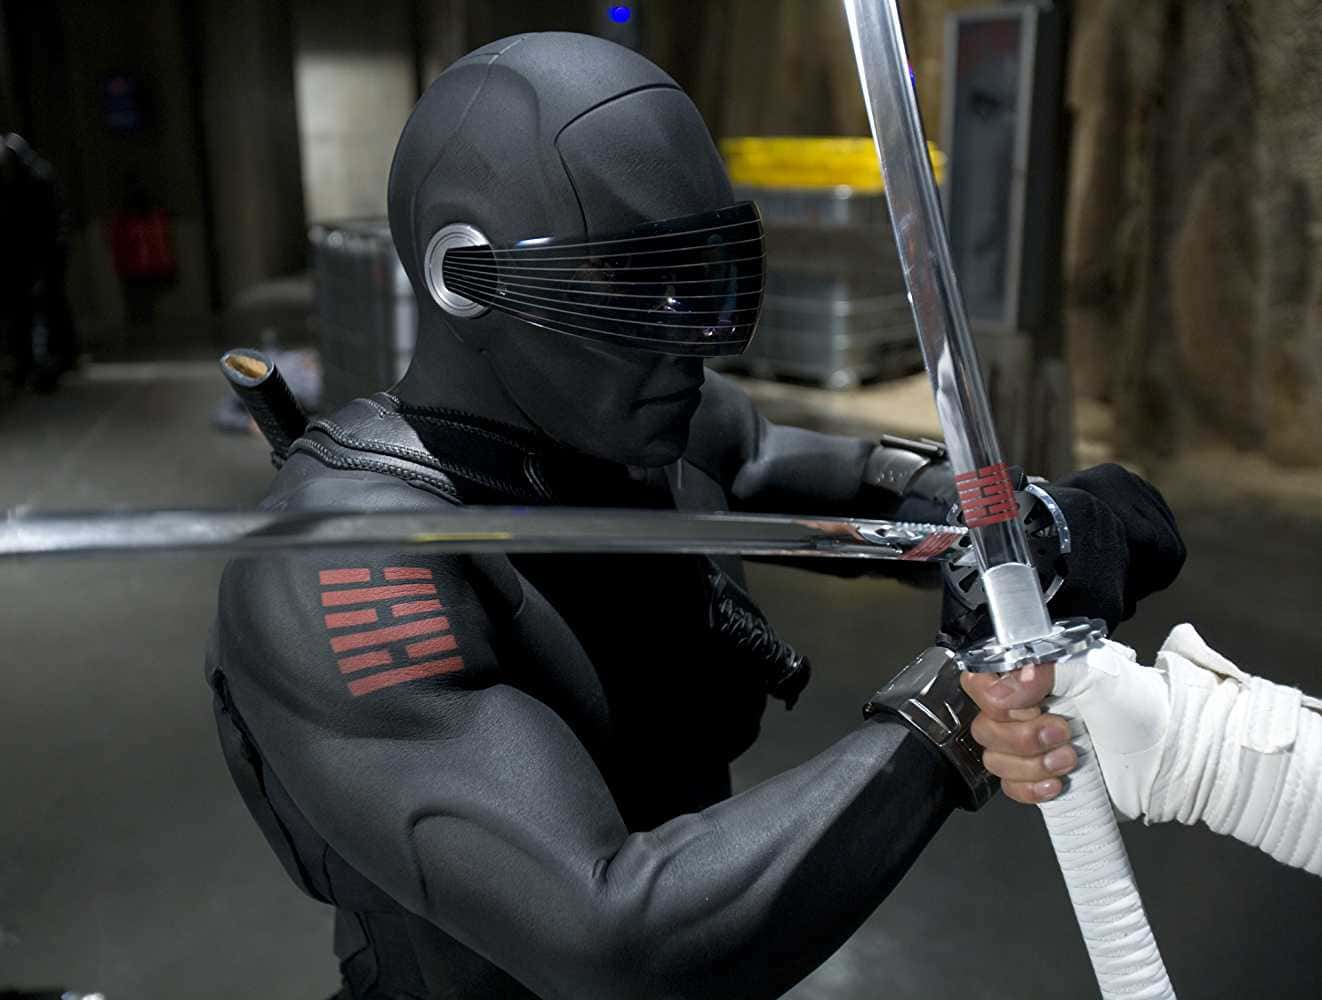 G I  Joe Chuckles and 'Snake Eyes': Paramount's spin-off frenzy into